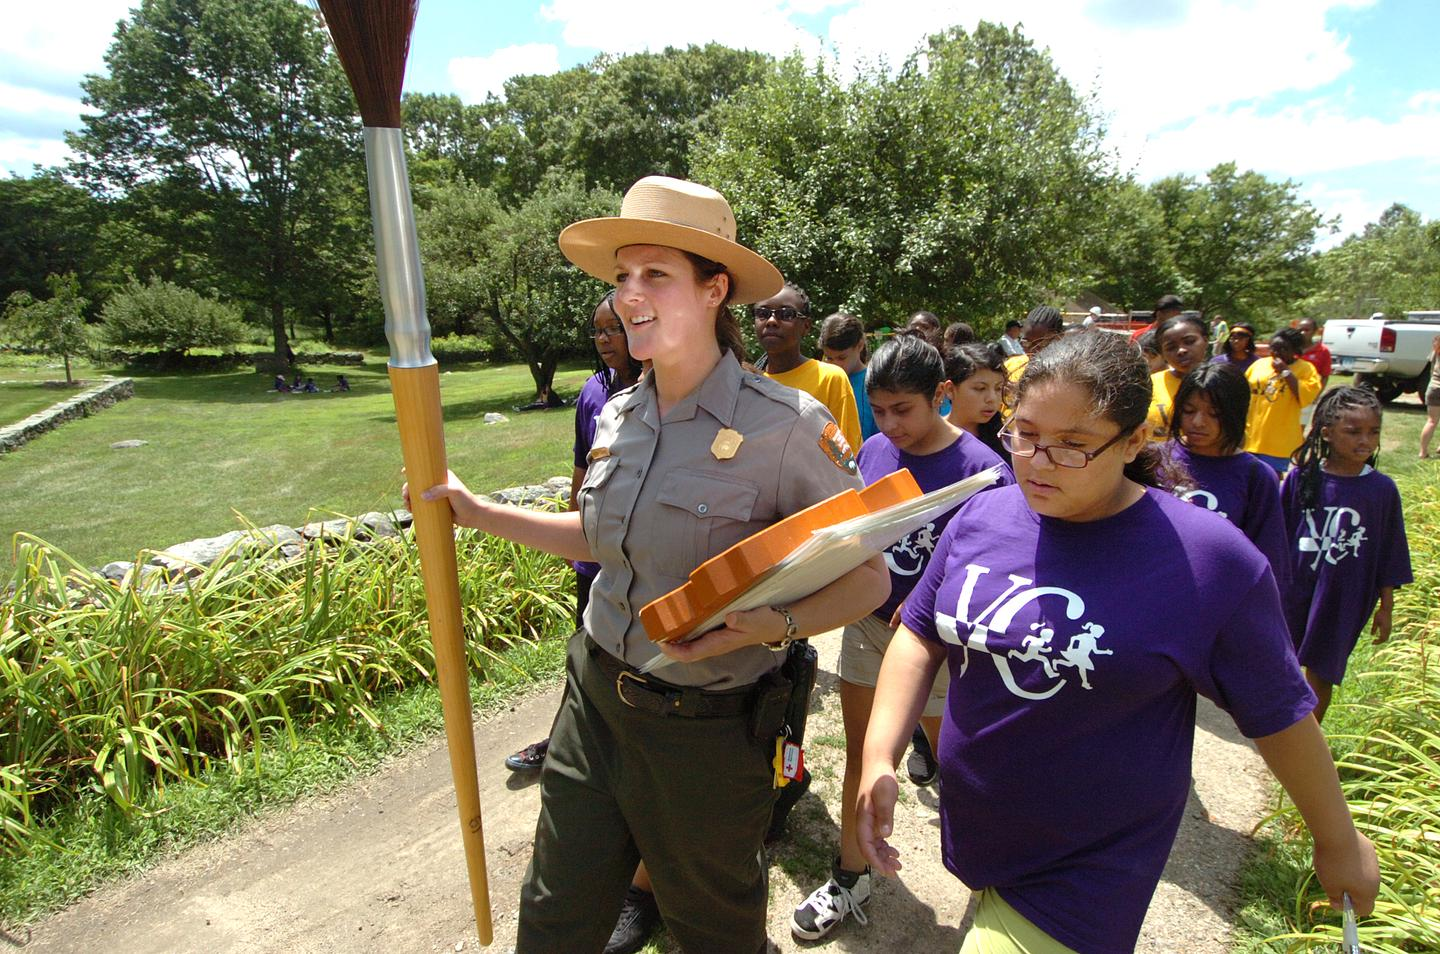 Ranger with Girl ScoutsPark Rangers lead tours of students and Girl Scouts throughout the year.